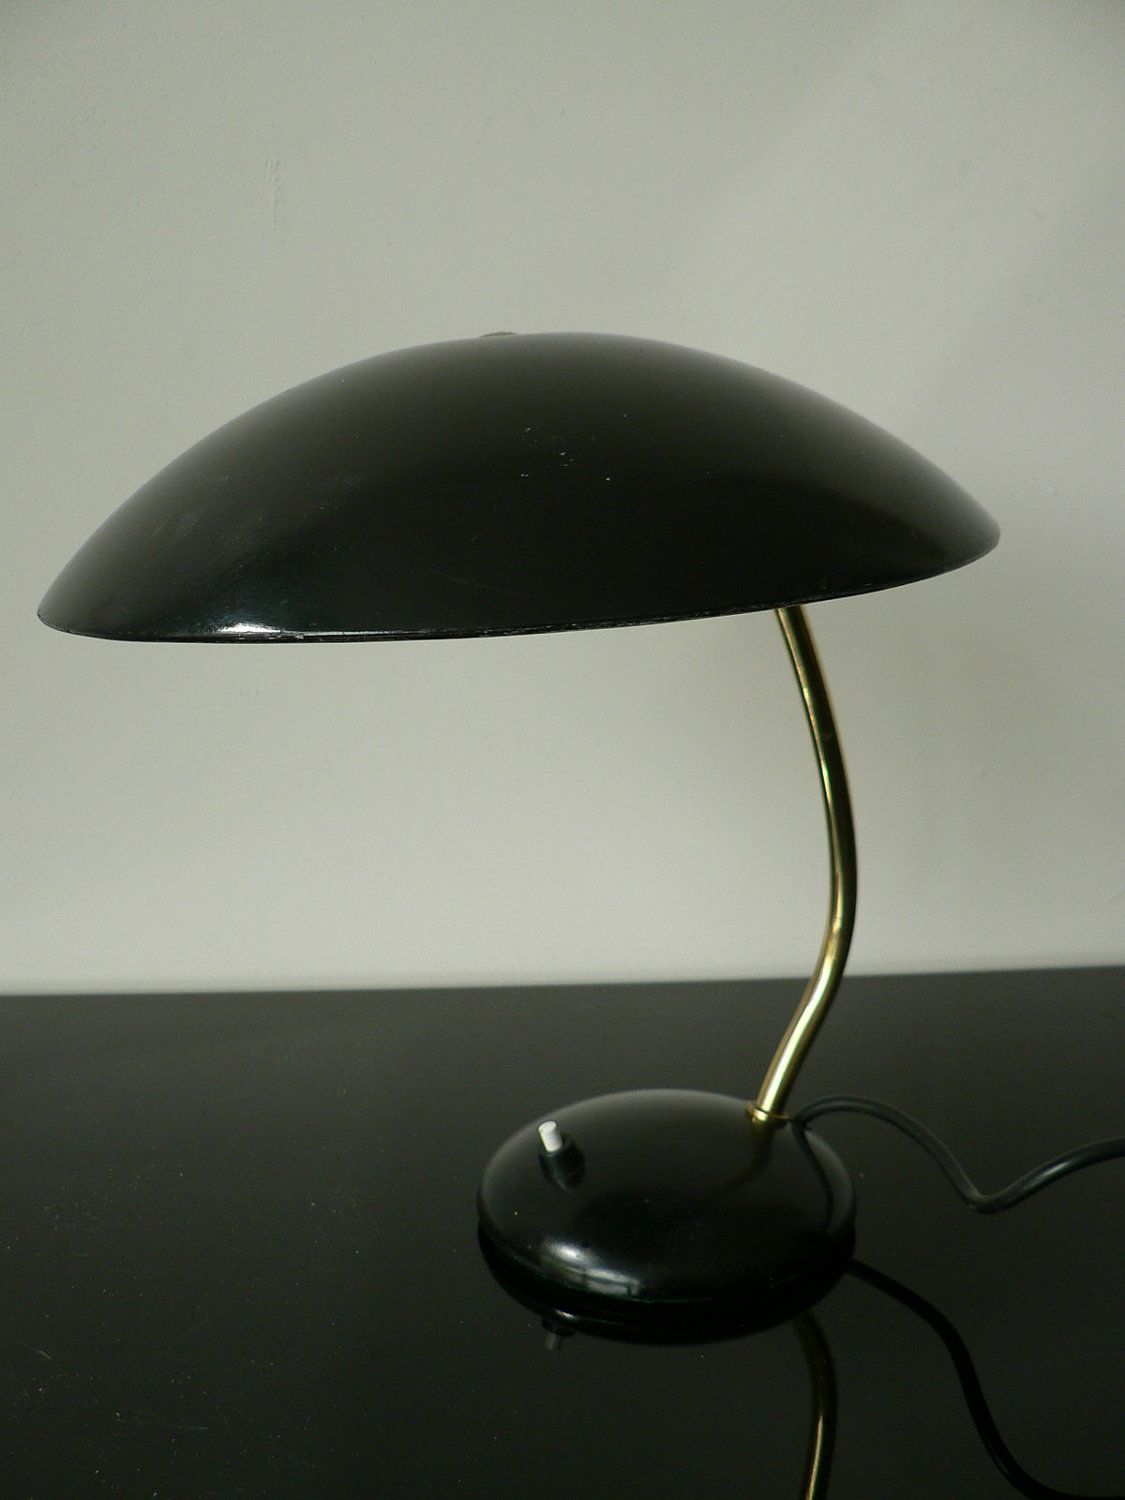 Vintage 1950s Mid Century Modern Hala Table Lamp Black Metal Desk Lamp Dutch Design Lamp Eames Phillips Bauhaus Era 175 00 Via Etsy Luci Artisti